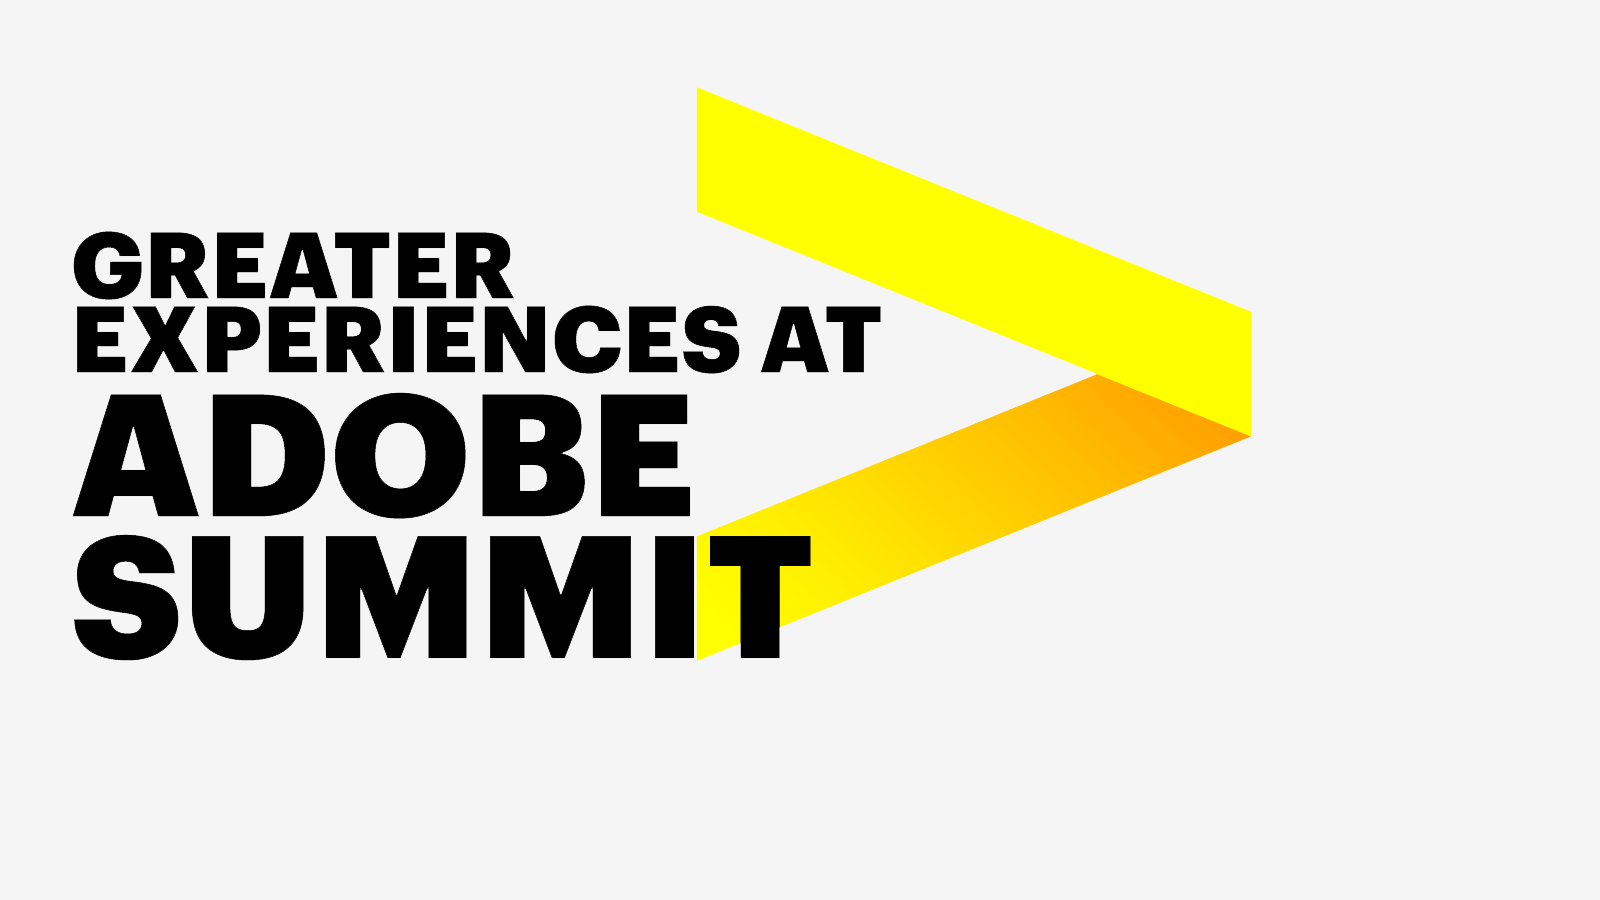 Greater experiences at Adobe Summit